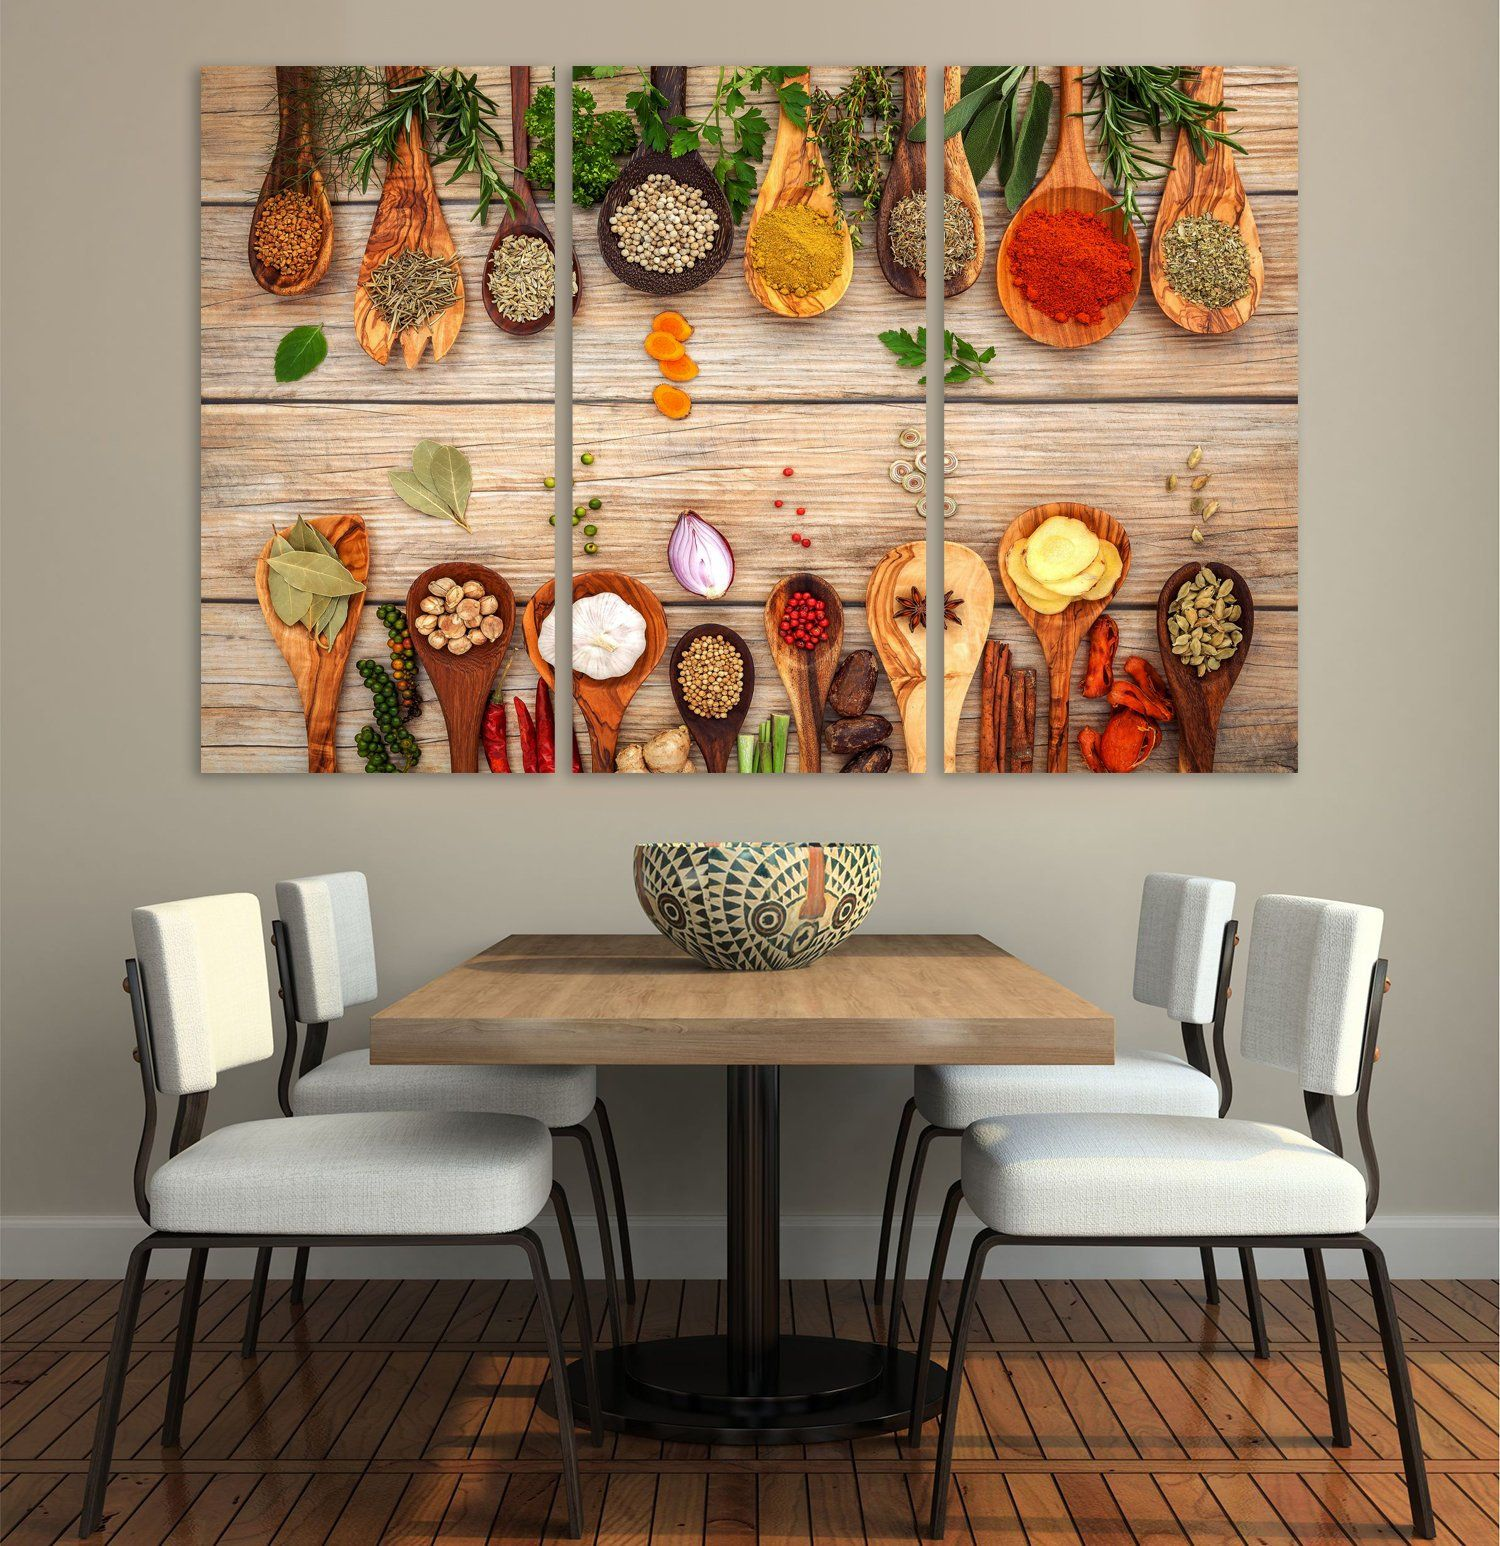 Restaurant Decor Kitchen Dining Room Decor Extra Large ...